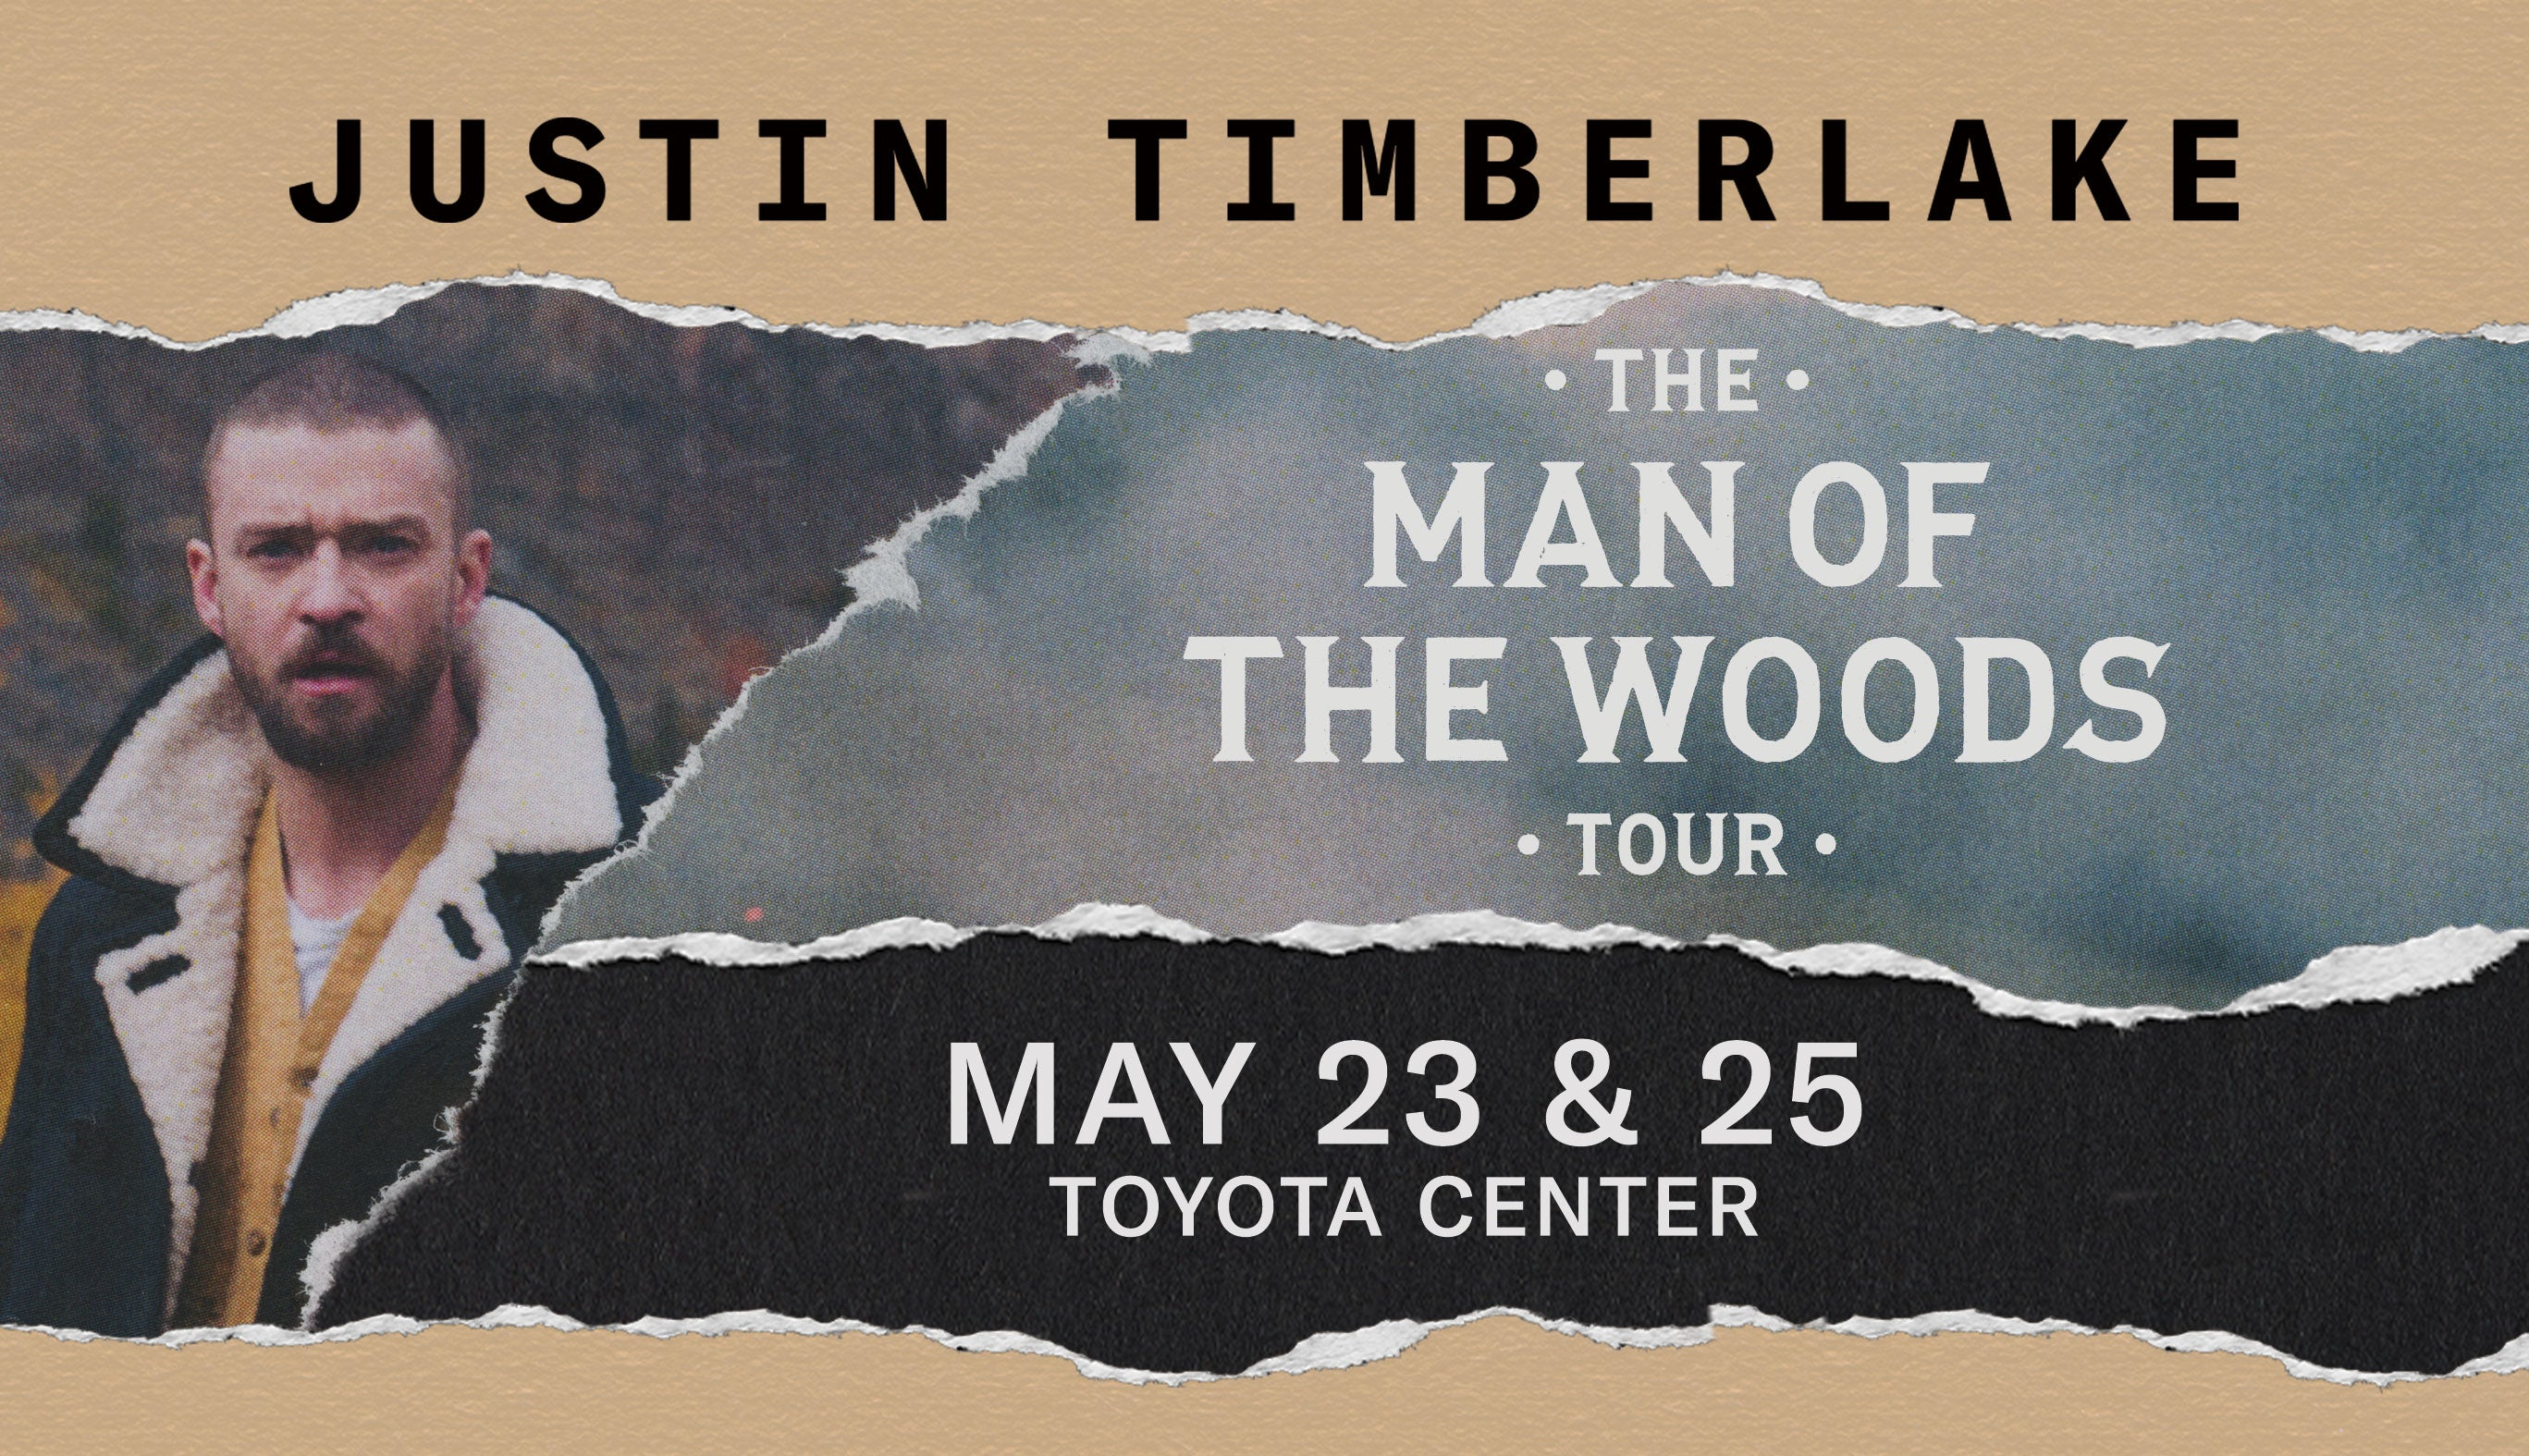 Justin timberlake tour dates in Perth